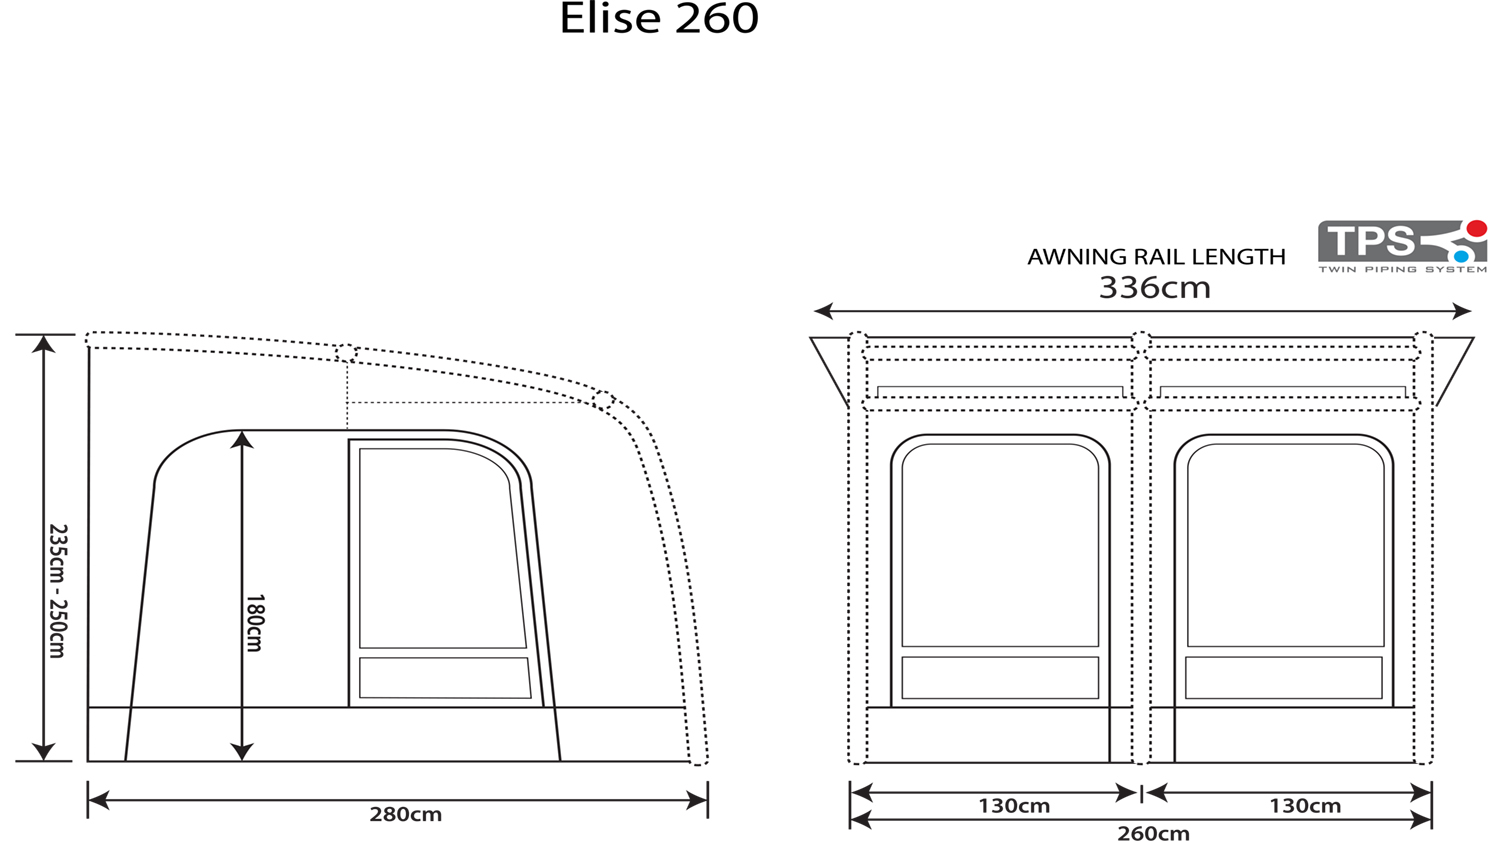 Outdoor Revolution Elise 260 Floorplan